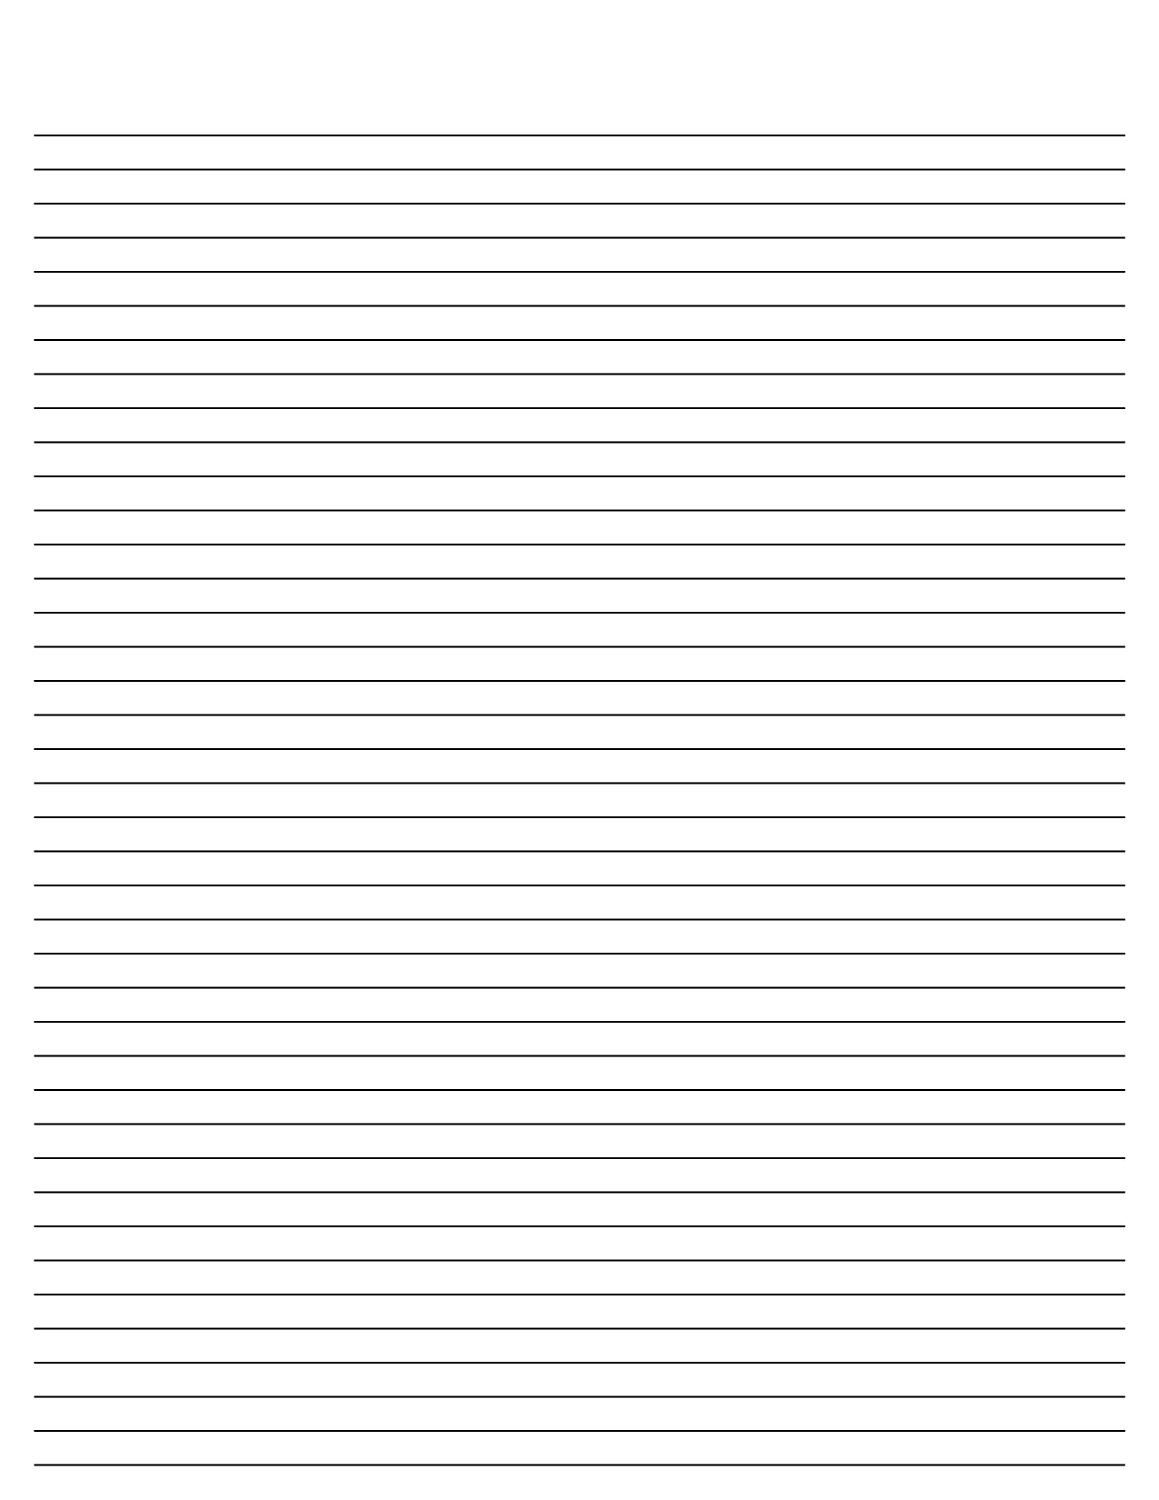 writing paper lines Printable primary handwriting paper for kids we have a variety of free lined paper including portrait, landscaper, with a spot for a picture and more.